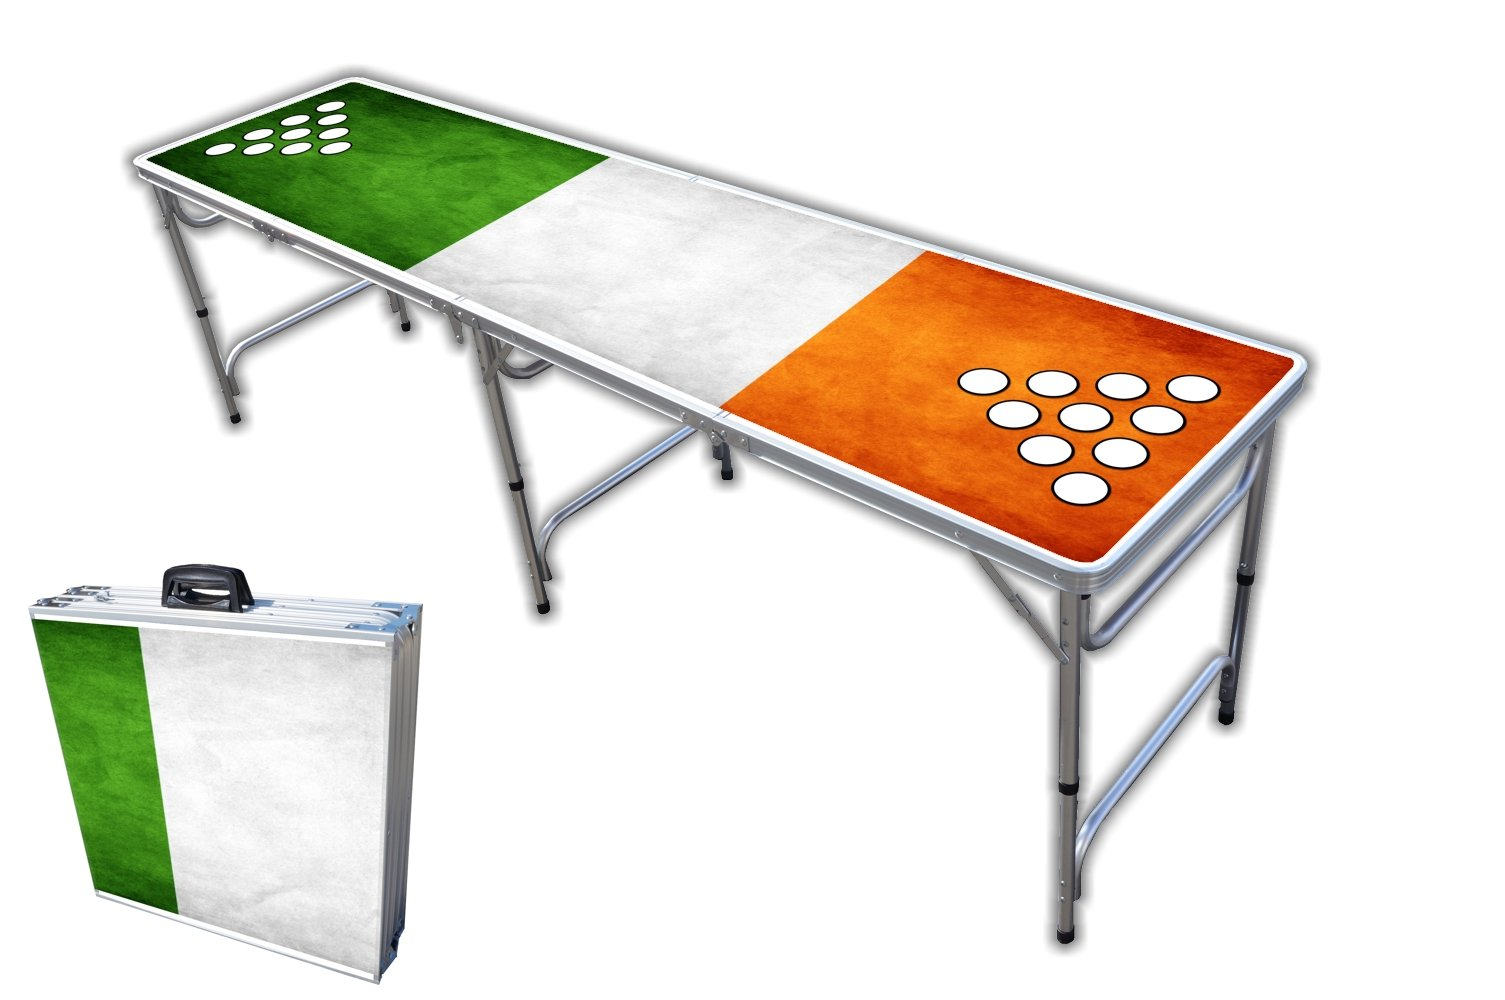 8-Foot Professional Beer Pong Table w/Cup Holes - Shenanigans Graphic by PartyPongTables.com